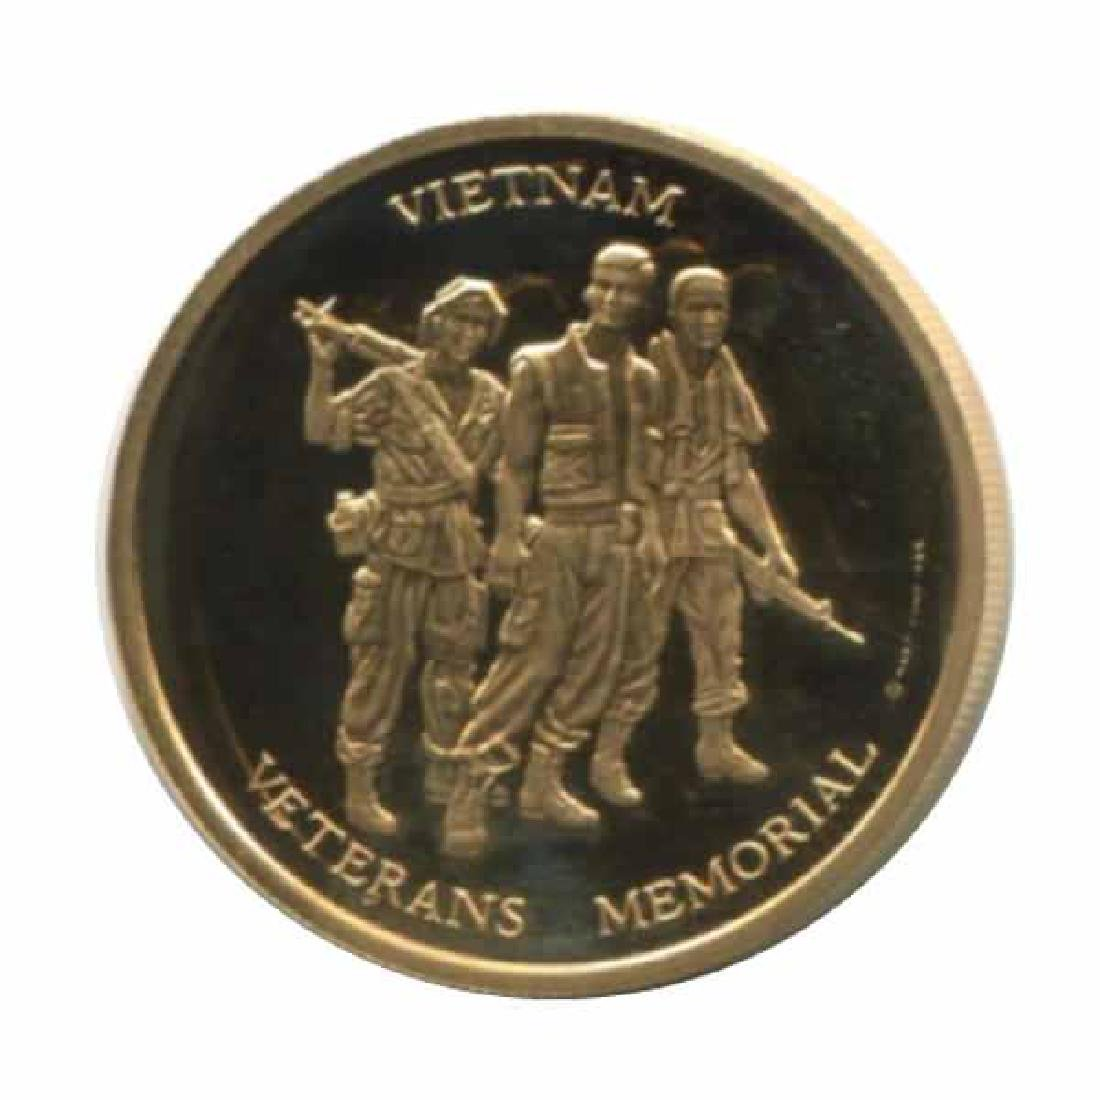 Vietnam Veterans Memorial 1/2 oz. gold PF Medal 1984